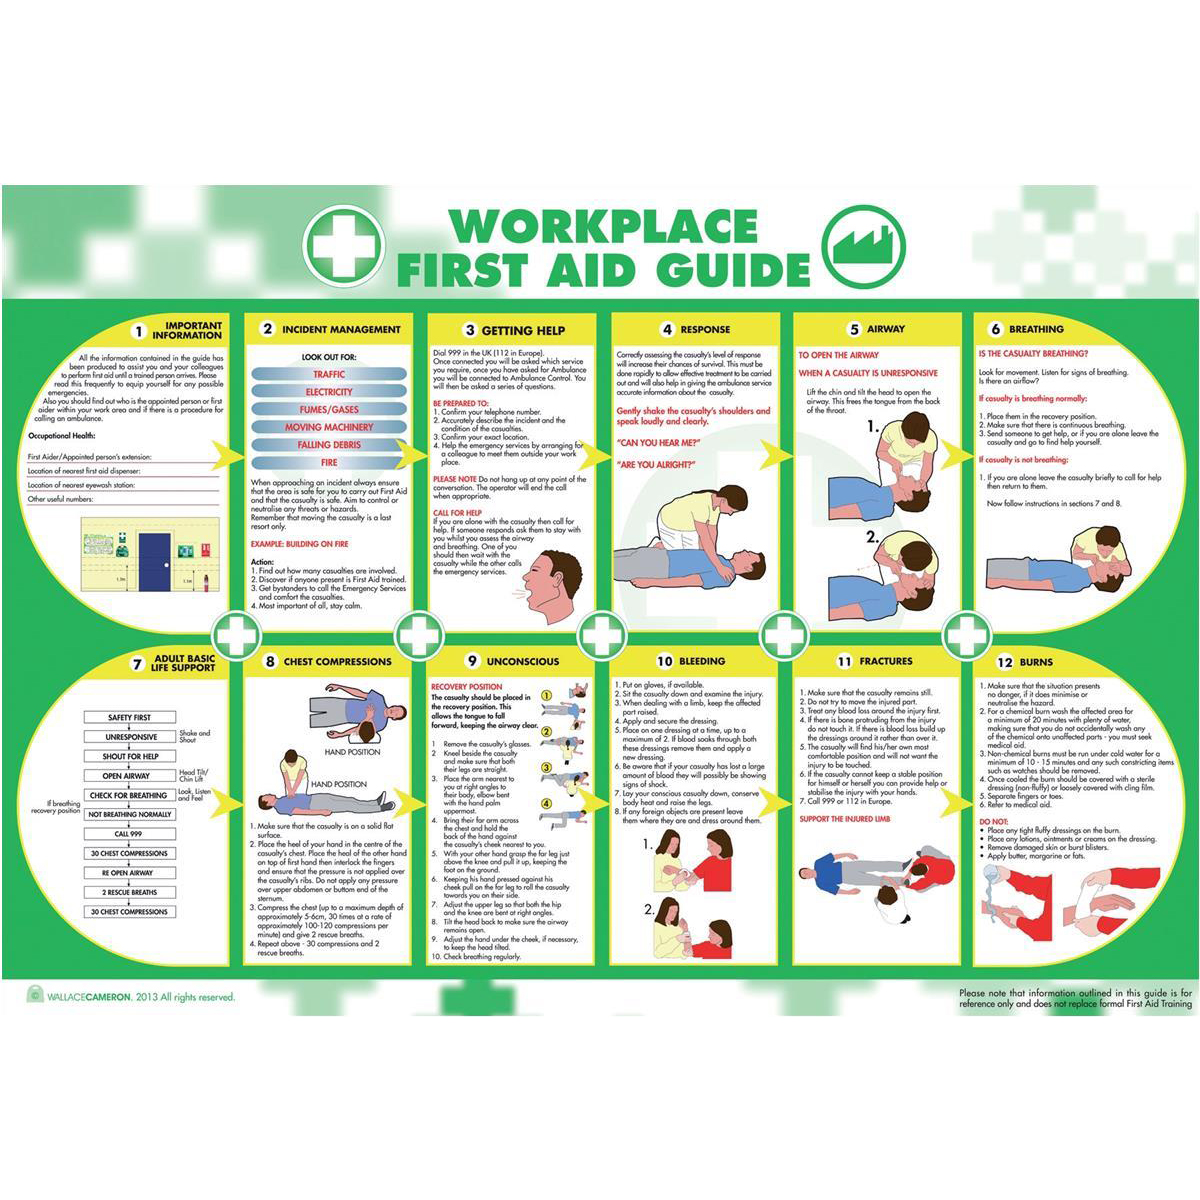 Advice Wallace Cameron Workplace First-Aid Guide Poster Laminated Wall-mountable W840xH590mm Ref 5405025